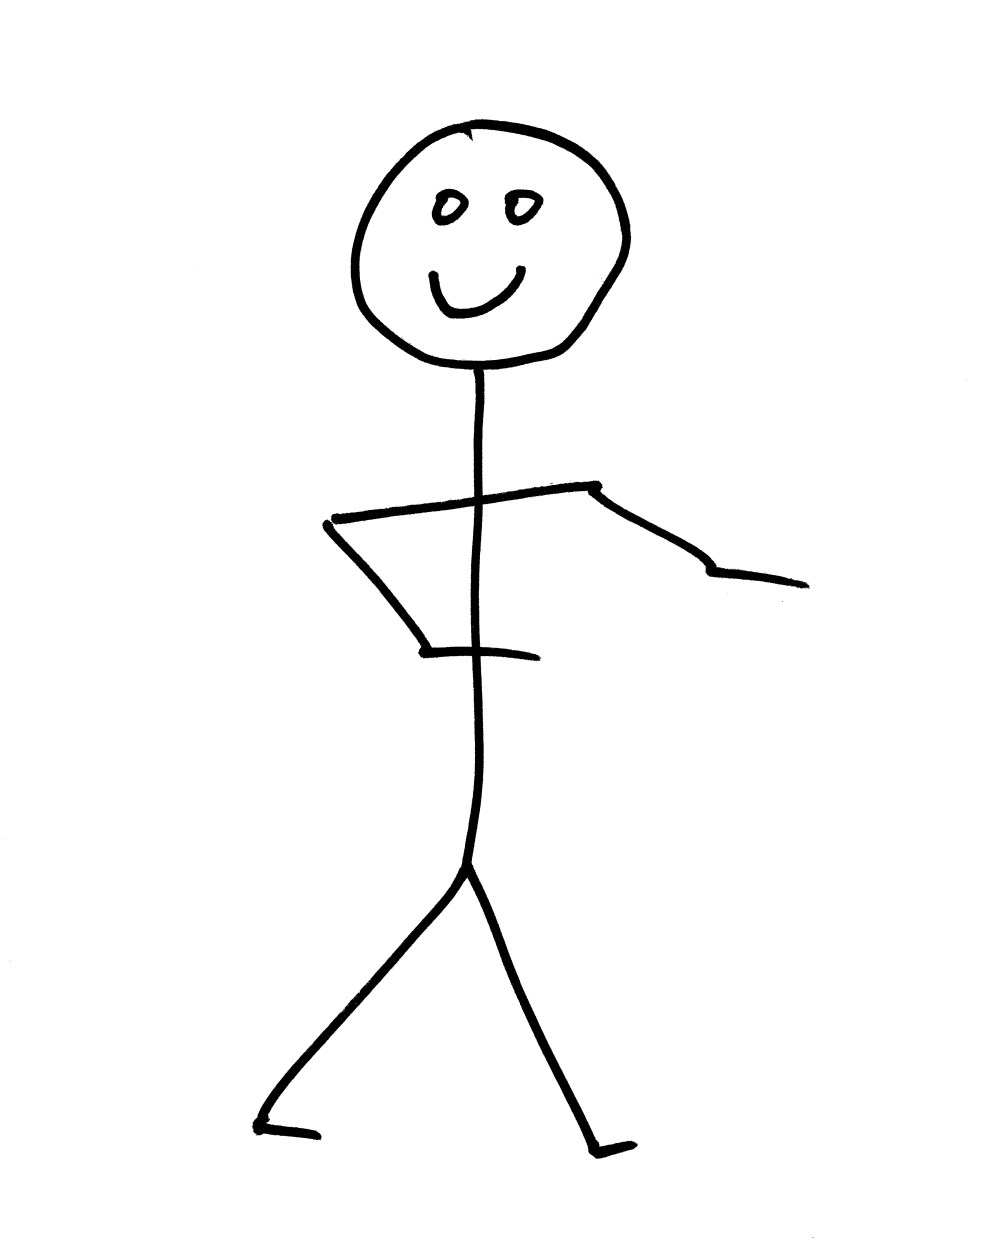 medium resolution of smiling stick figure person free high resolution clipart